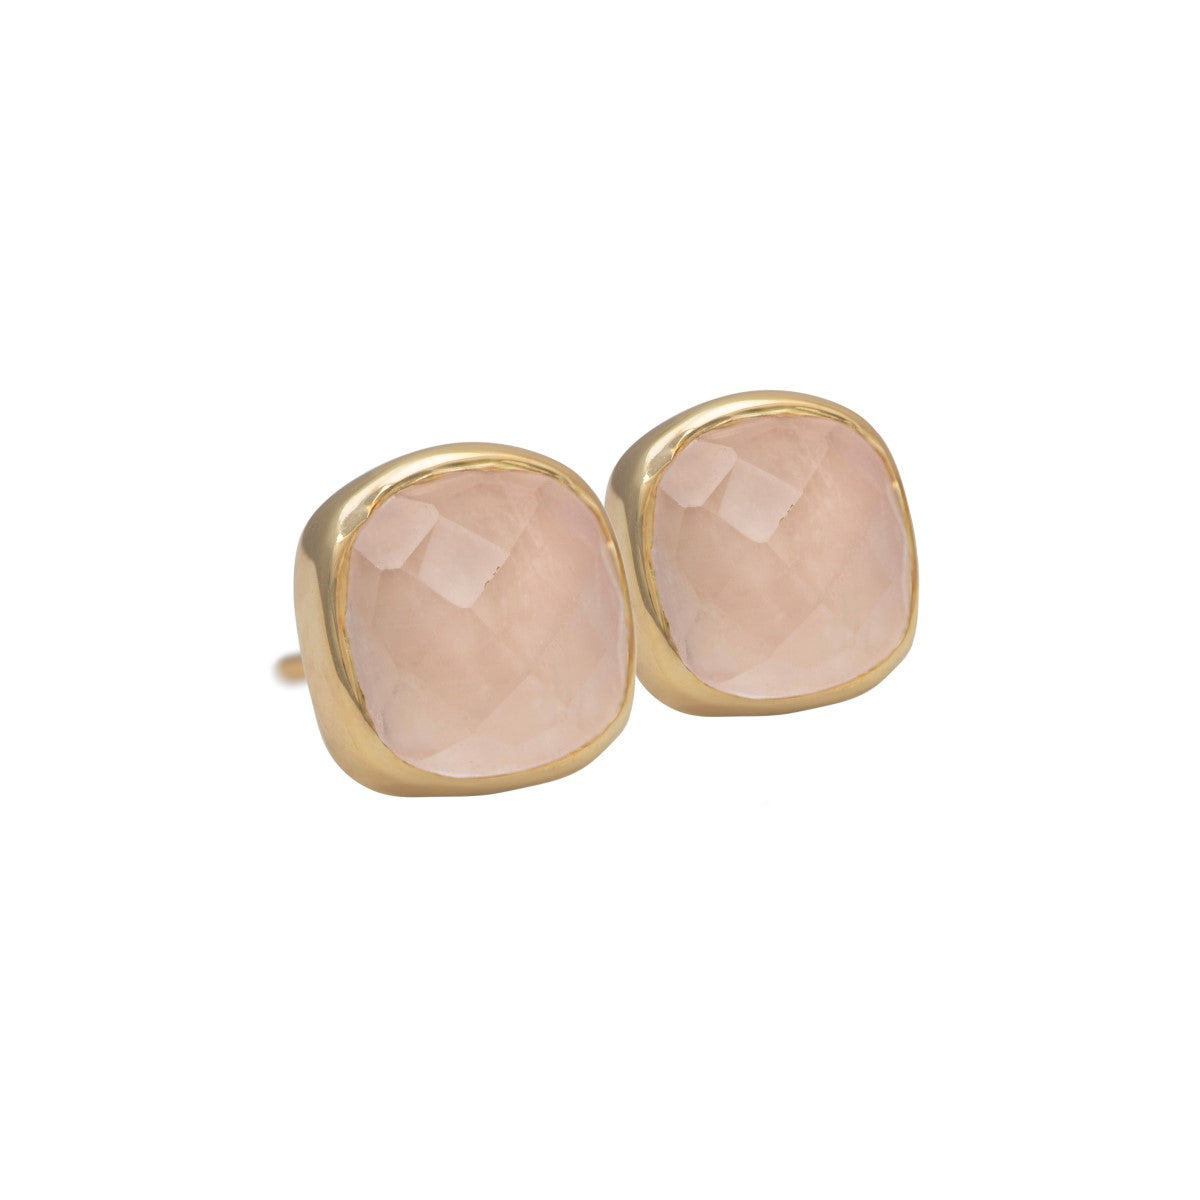 Faceted Square Rose Quartz Gemstone Stud Earrings in Gold Plated Sterling Silver